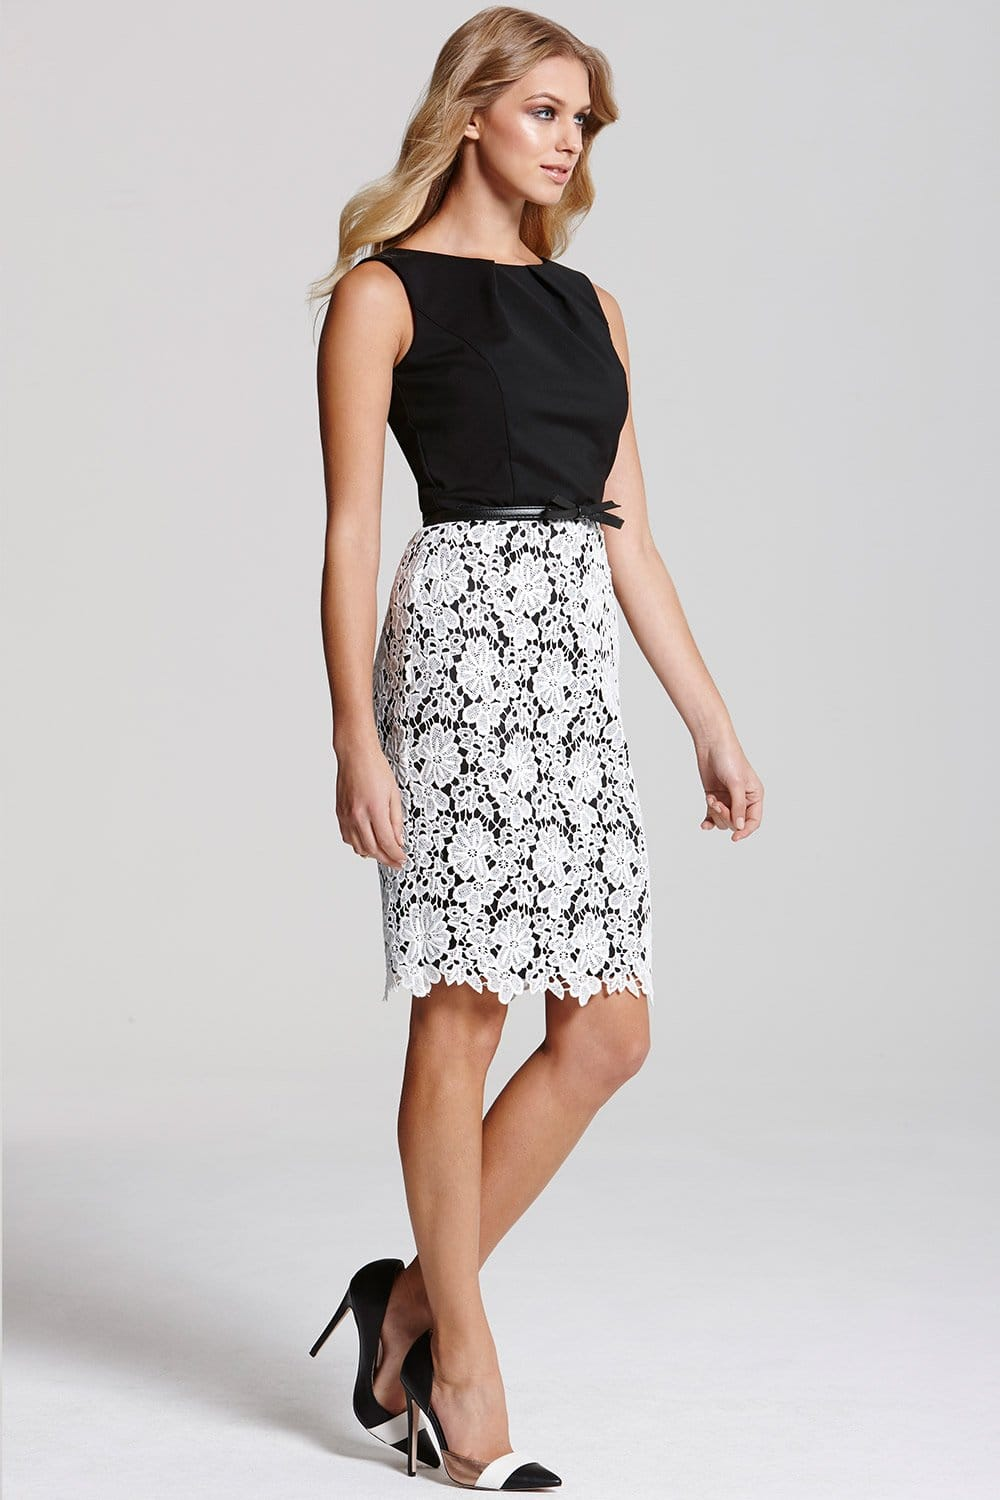 Wedding Black And White Lace Dress paper dolls black and white lace skirt dress from dress